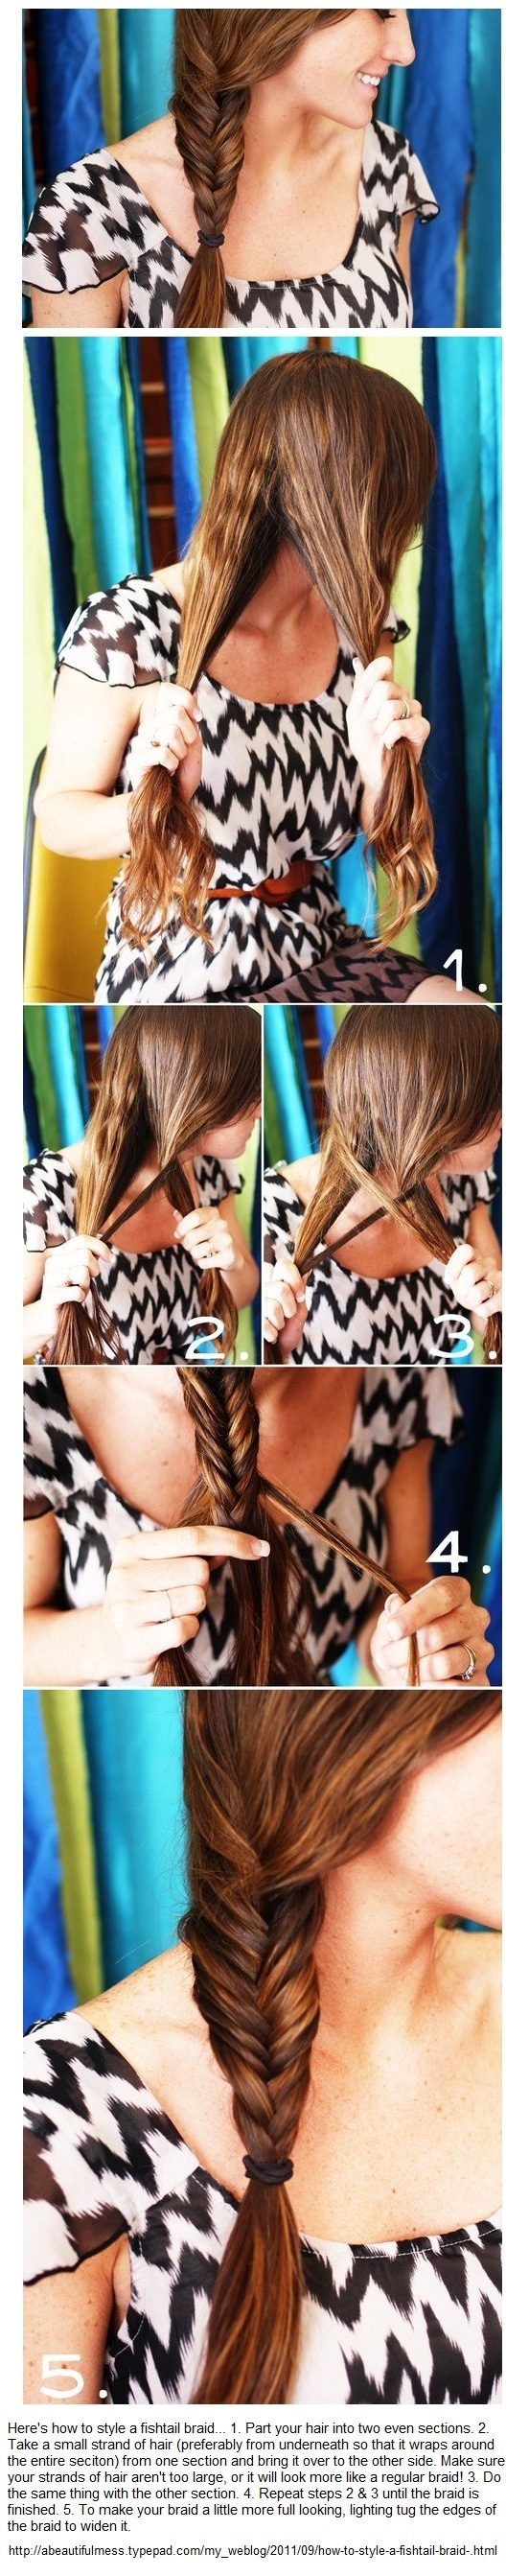 for Allie   Looks like a side, fish braid. Easy!Braids How To, Messy Fishtail Braids, Fish Braids, Braid Tutorials, Side Fishtail, Hair Growing, Bones Braids, Fish Bones, Braids Hair